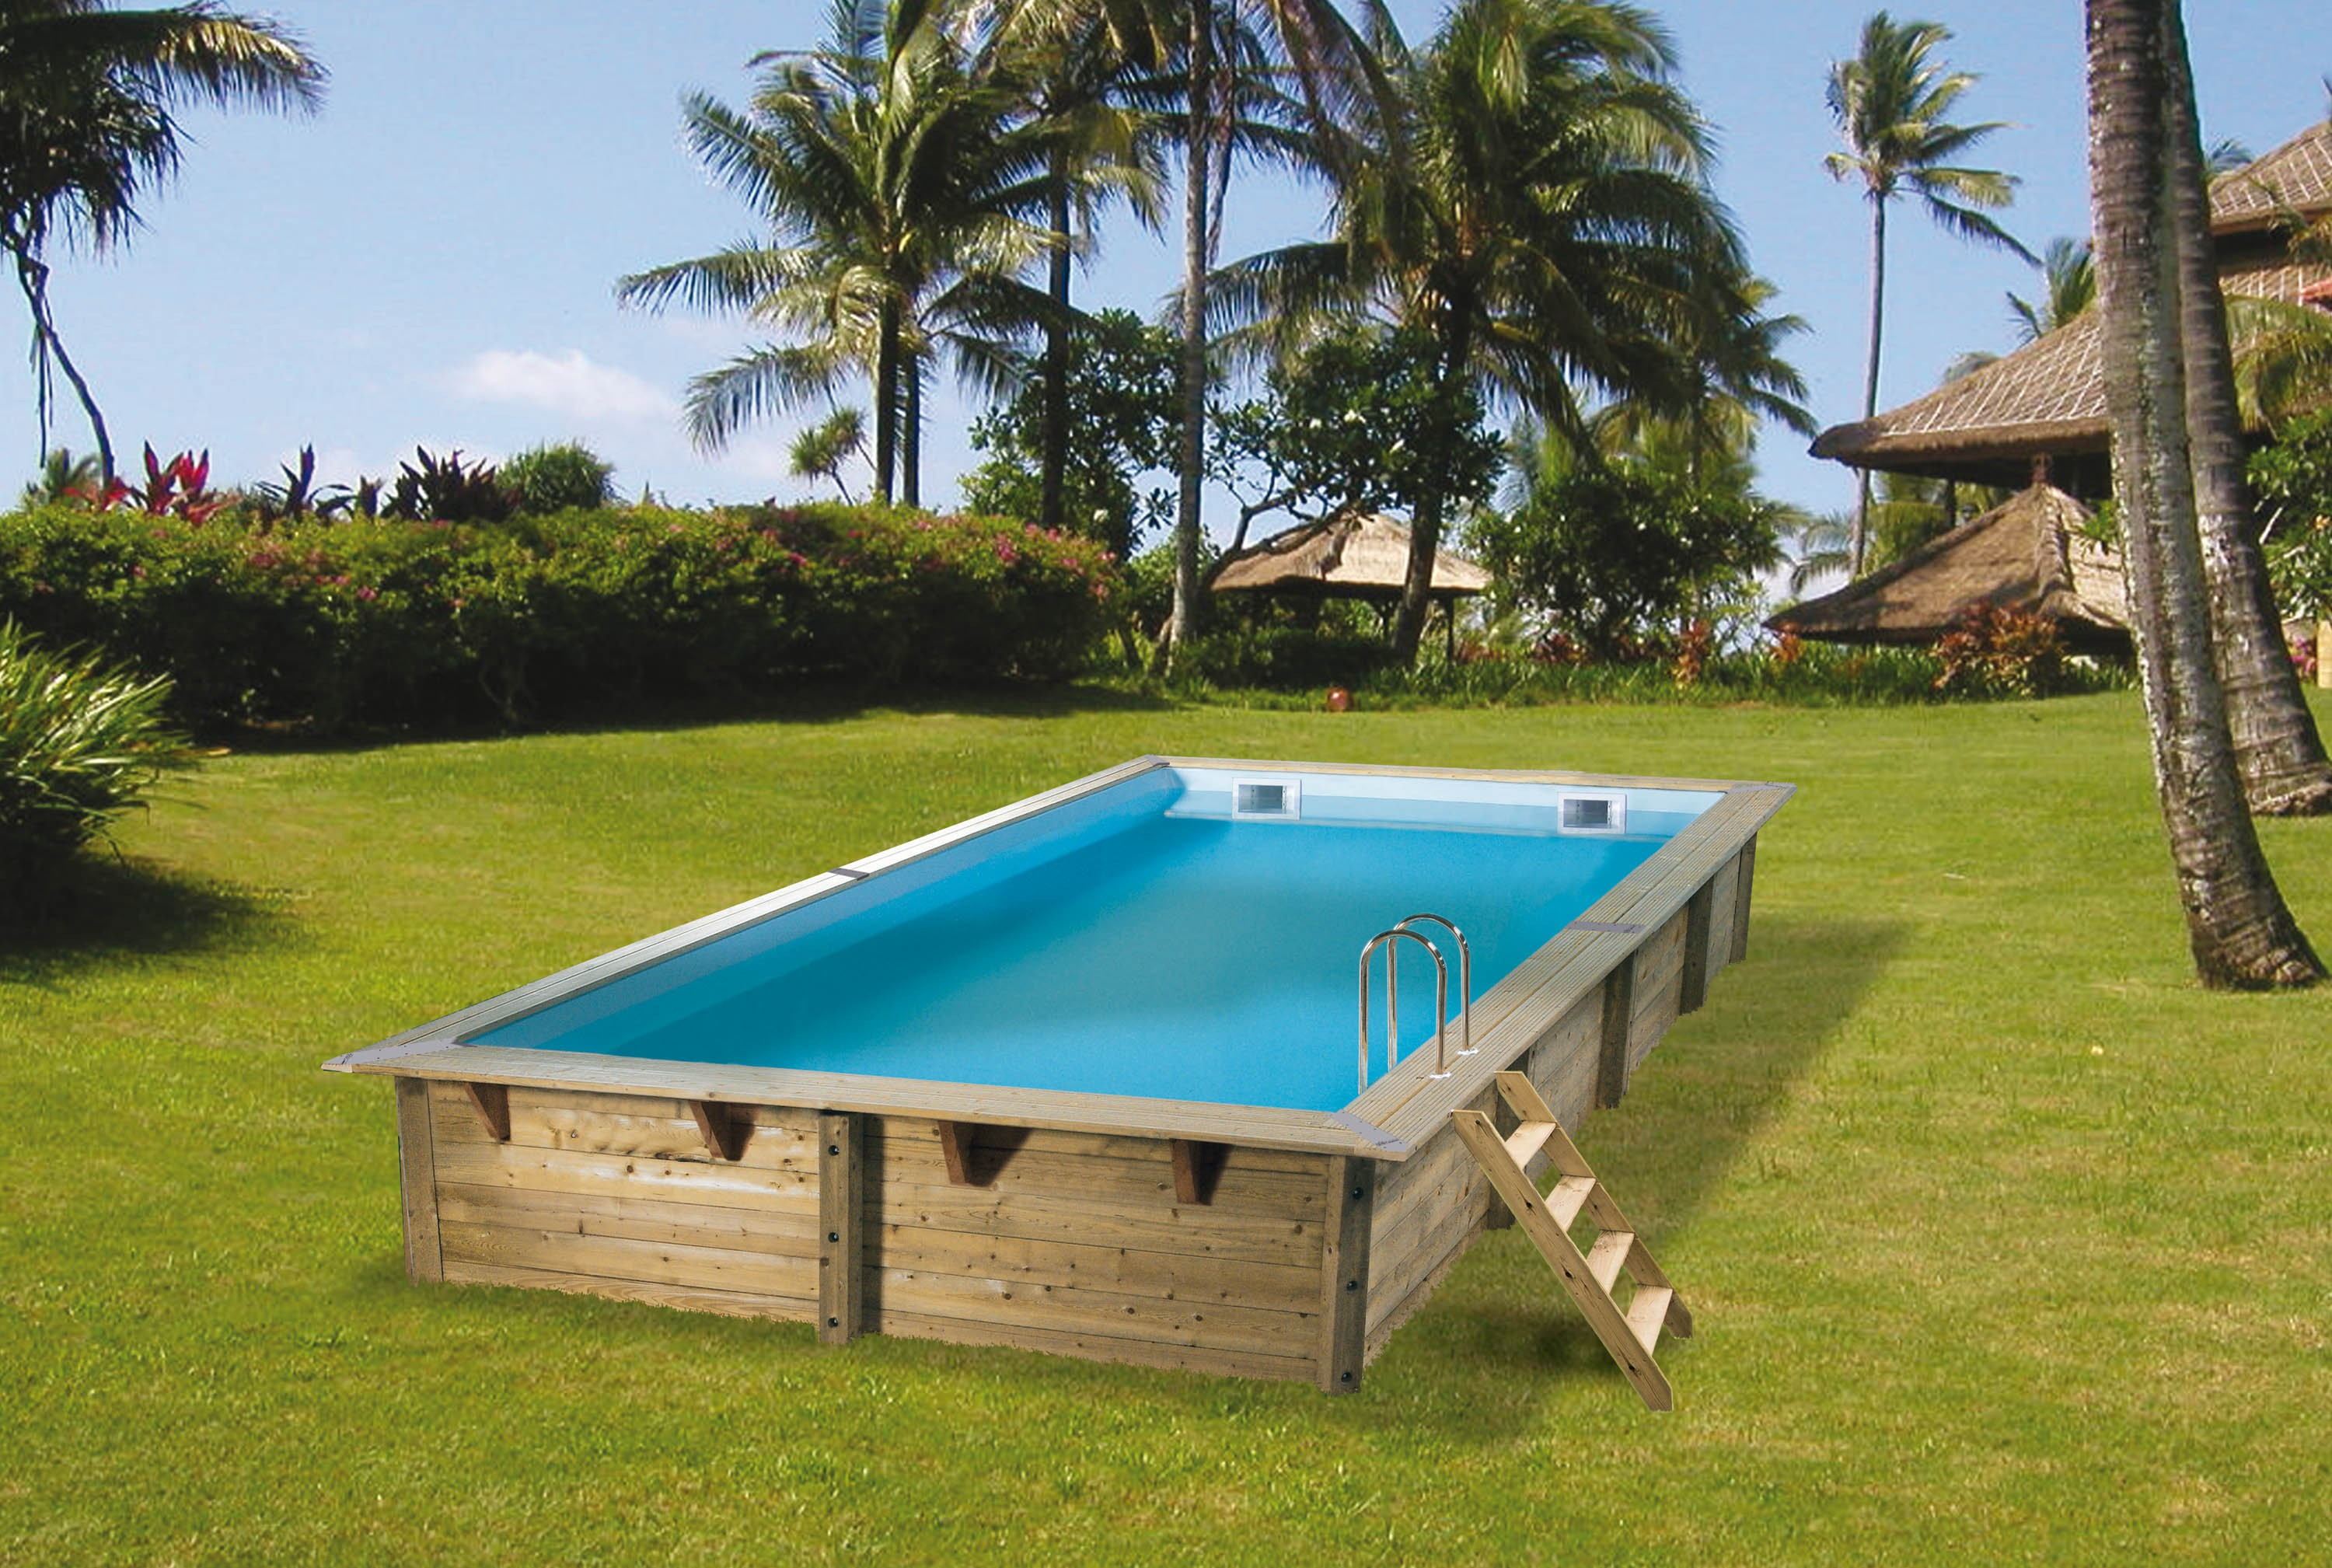 Piscine bois ubbink linea rectangulaire en kit for Kit piscine en bois